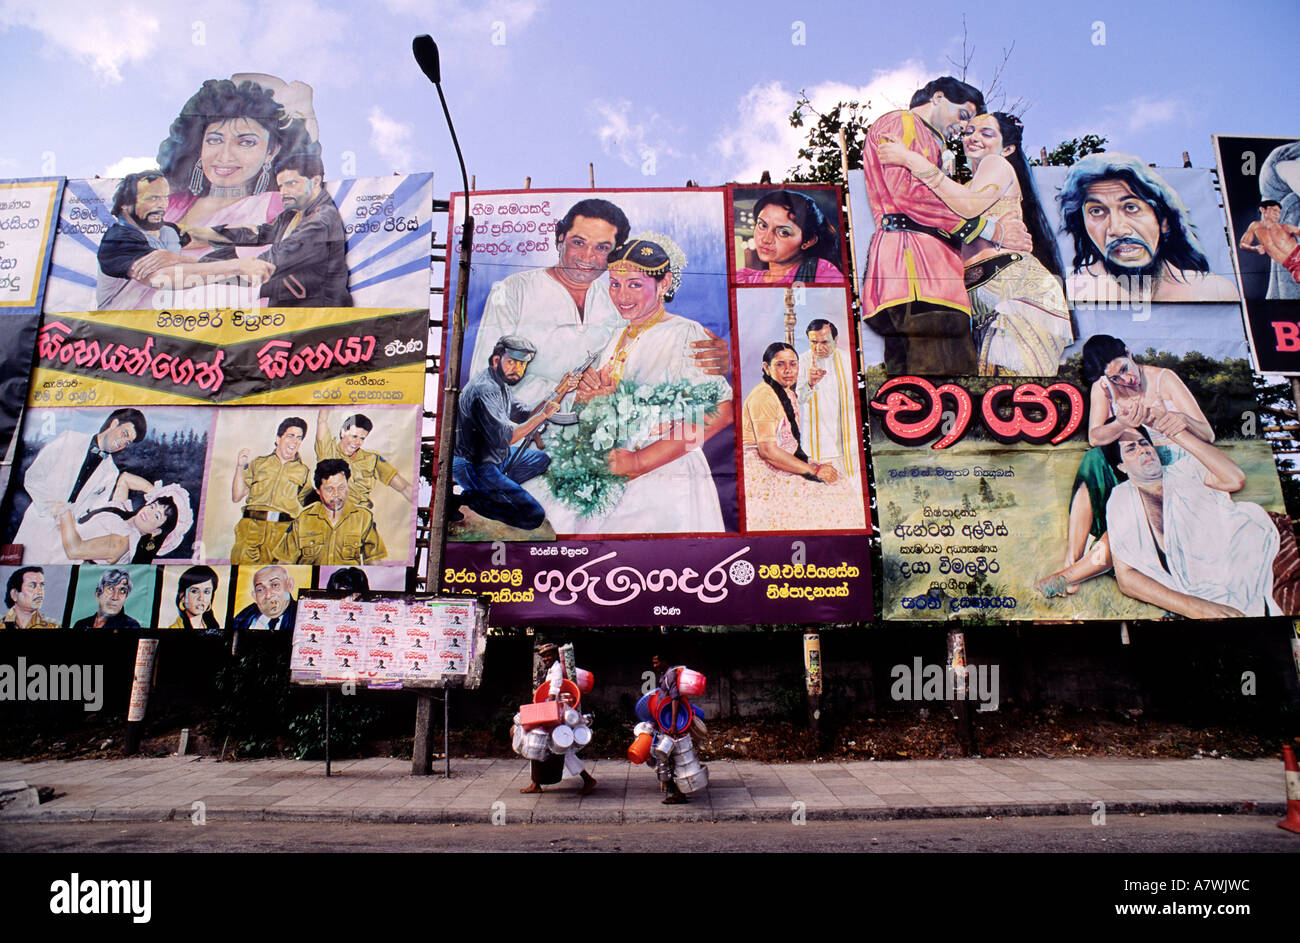 Sri Lanka, Colombo, cinema posters - Stock Image